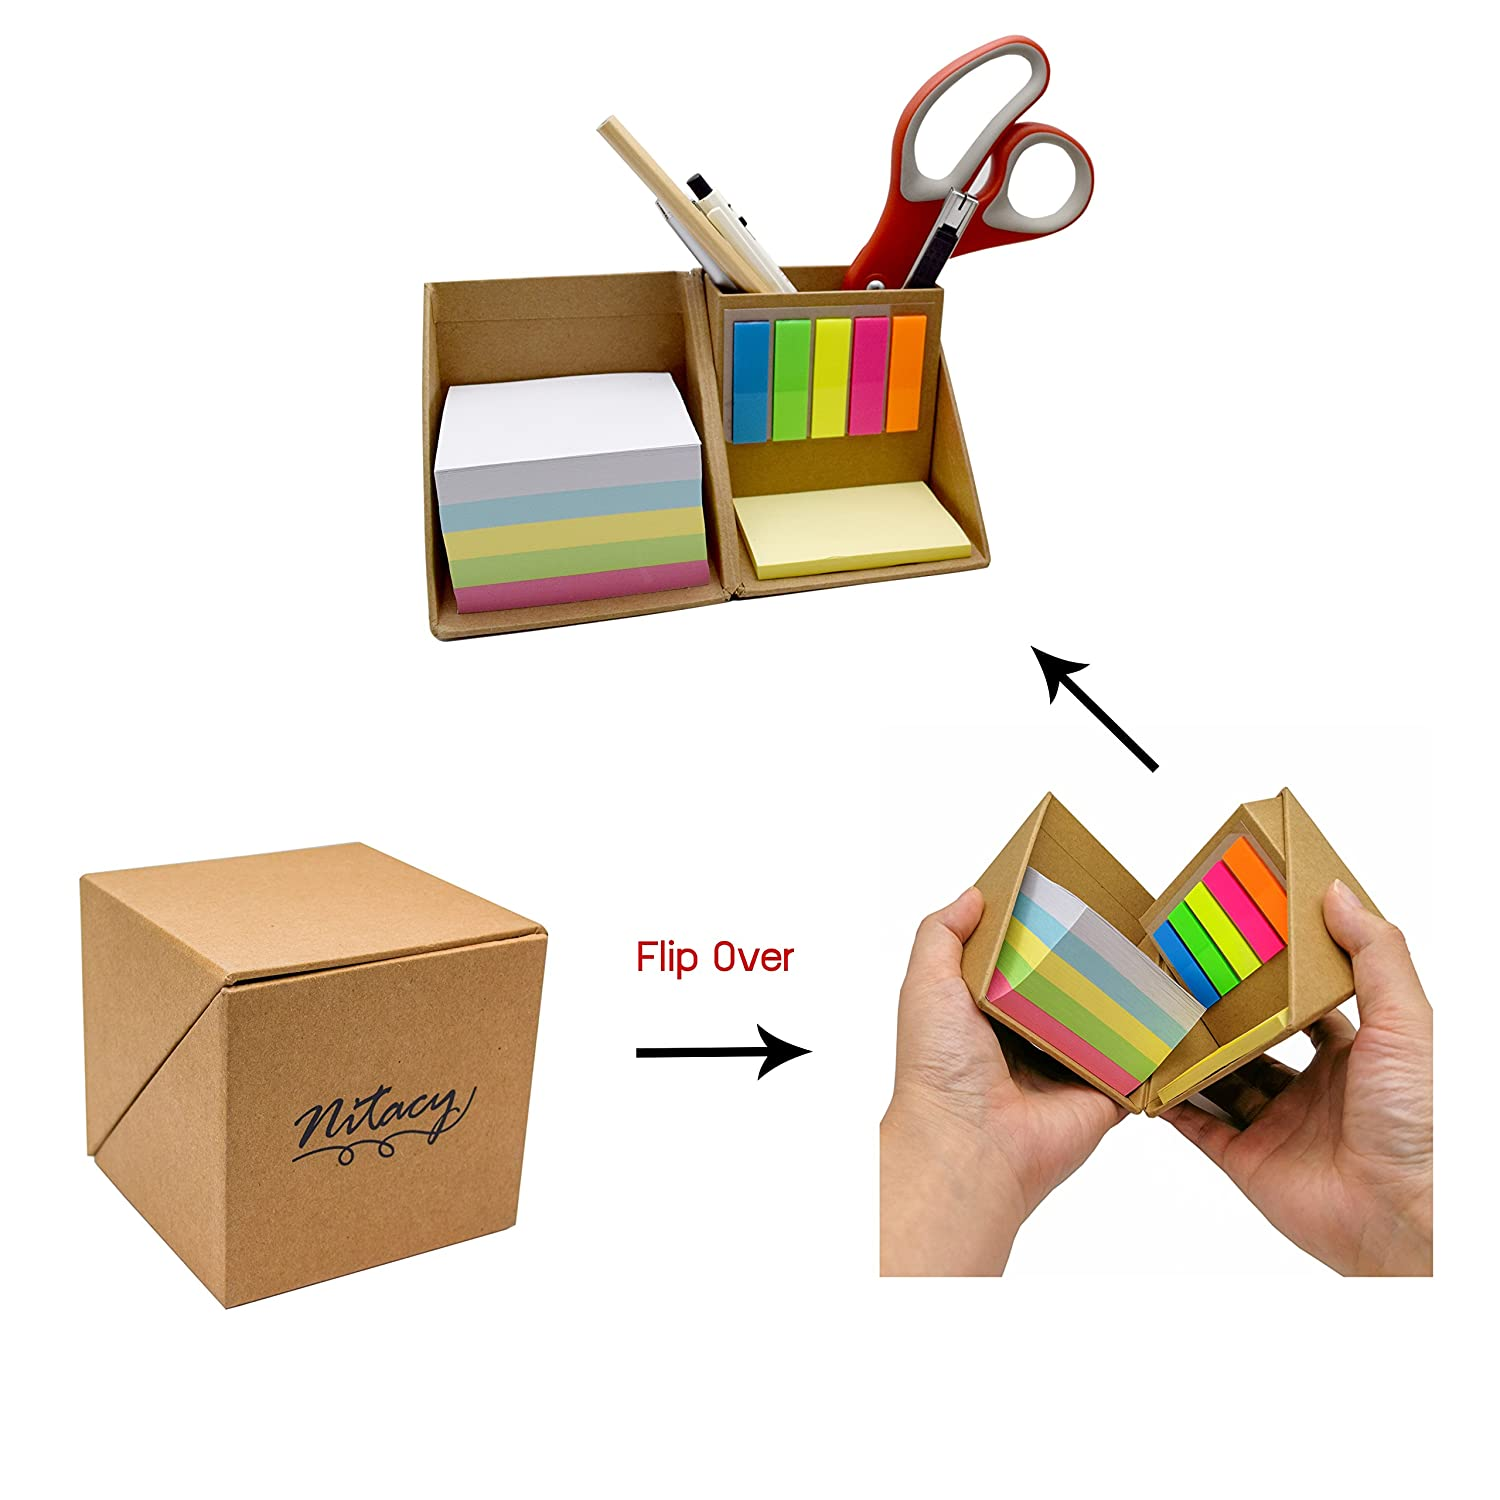 Nitacy Office Supplies Desk Organizer Blank Memo Note Pads Yellow Sticky Notes and Page Marker Colored Index Tabs Flags with Pen Pencil Holder in Recycle Kraft Box 4335521084